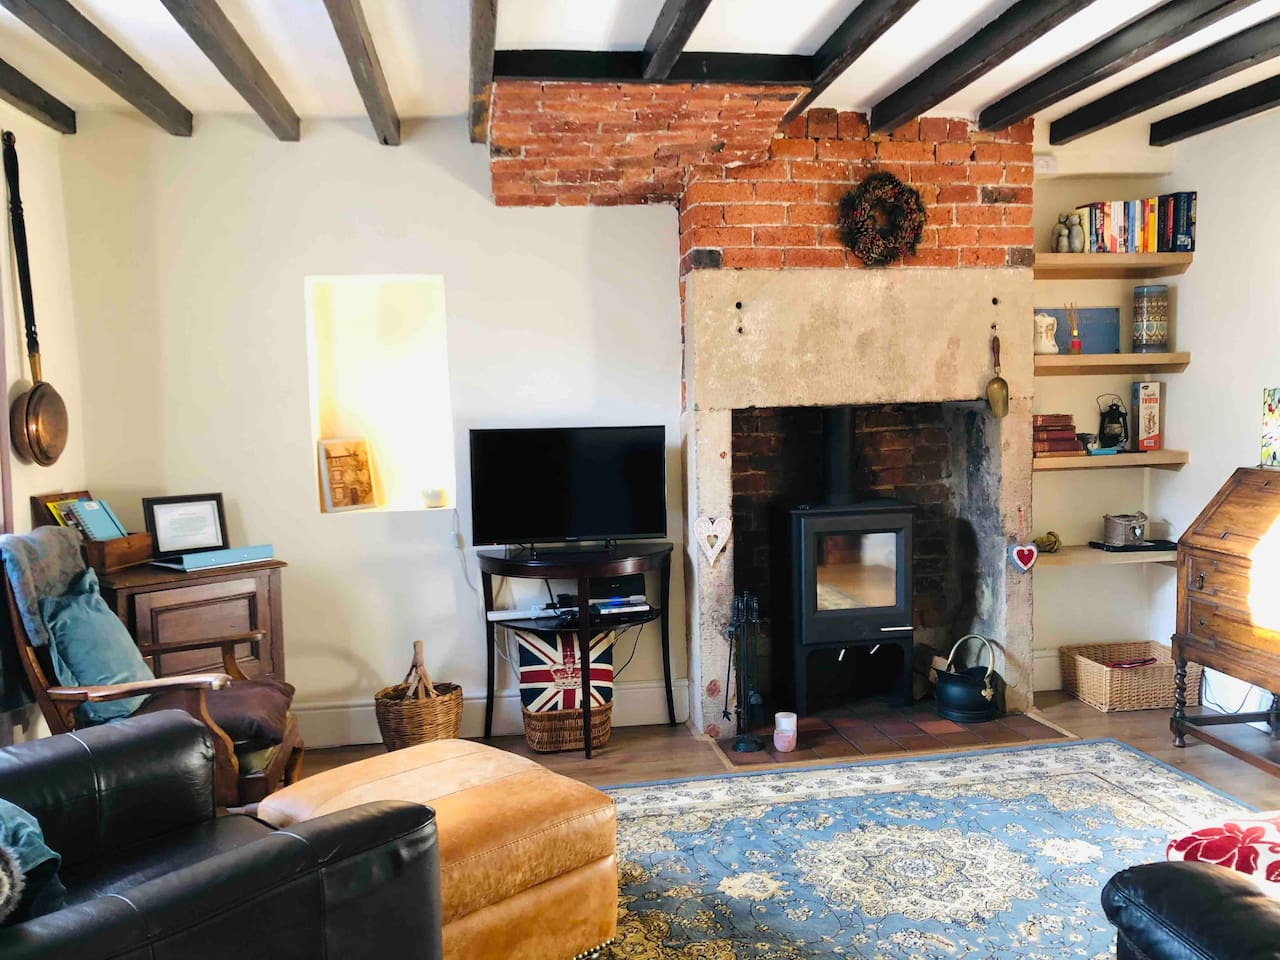 Lovely and cozy front room with new wood burning stove